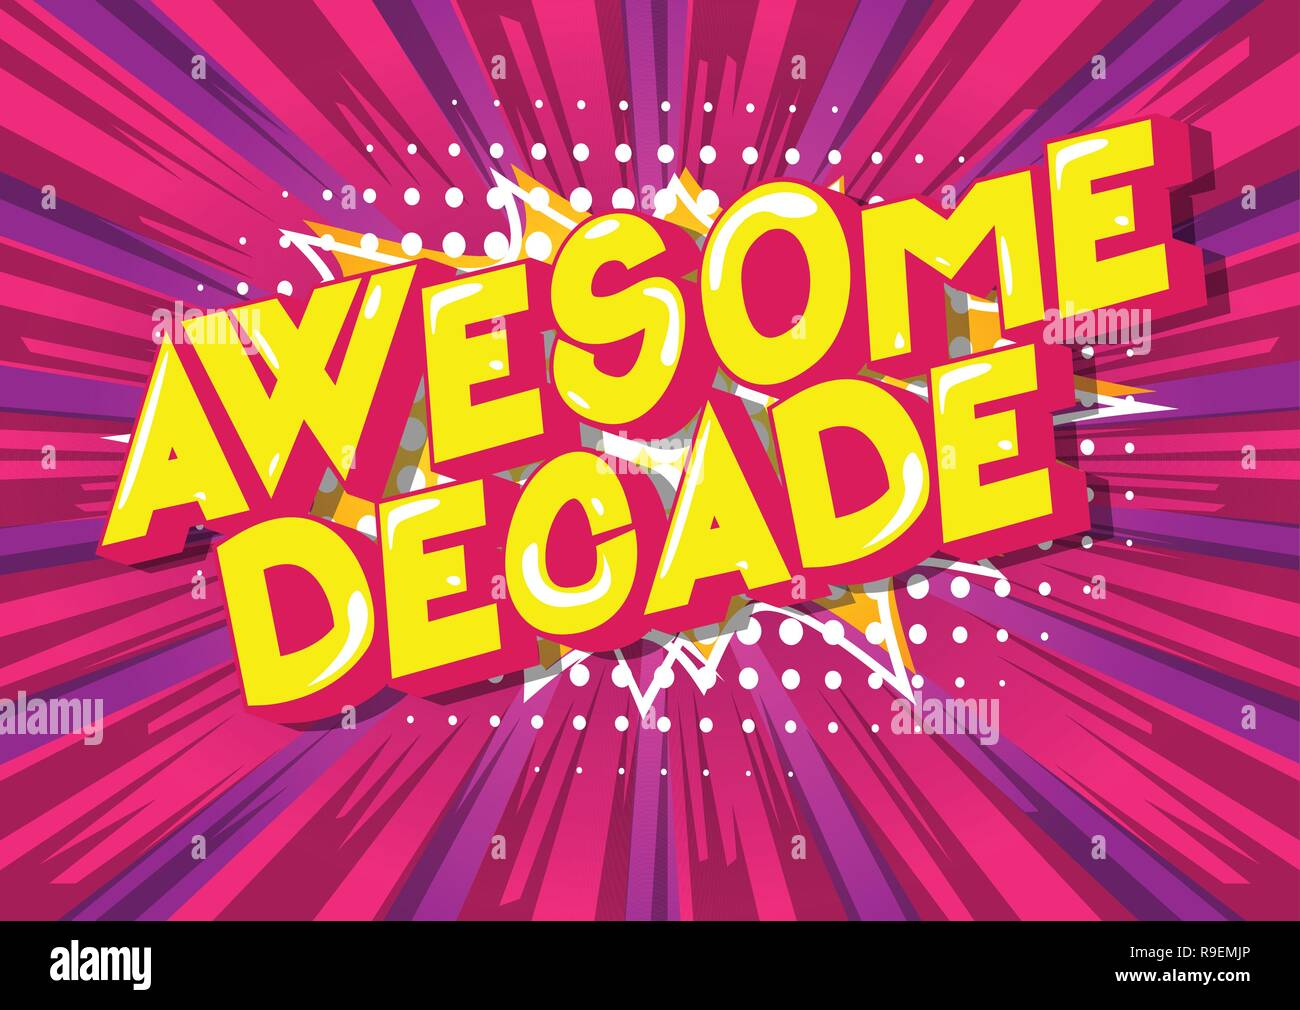 Awesome Decade - Vector illustrated comic book style phrase on abstract background. - Stock Image